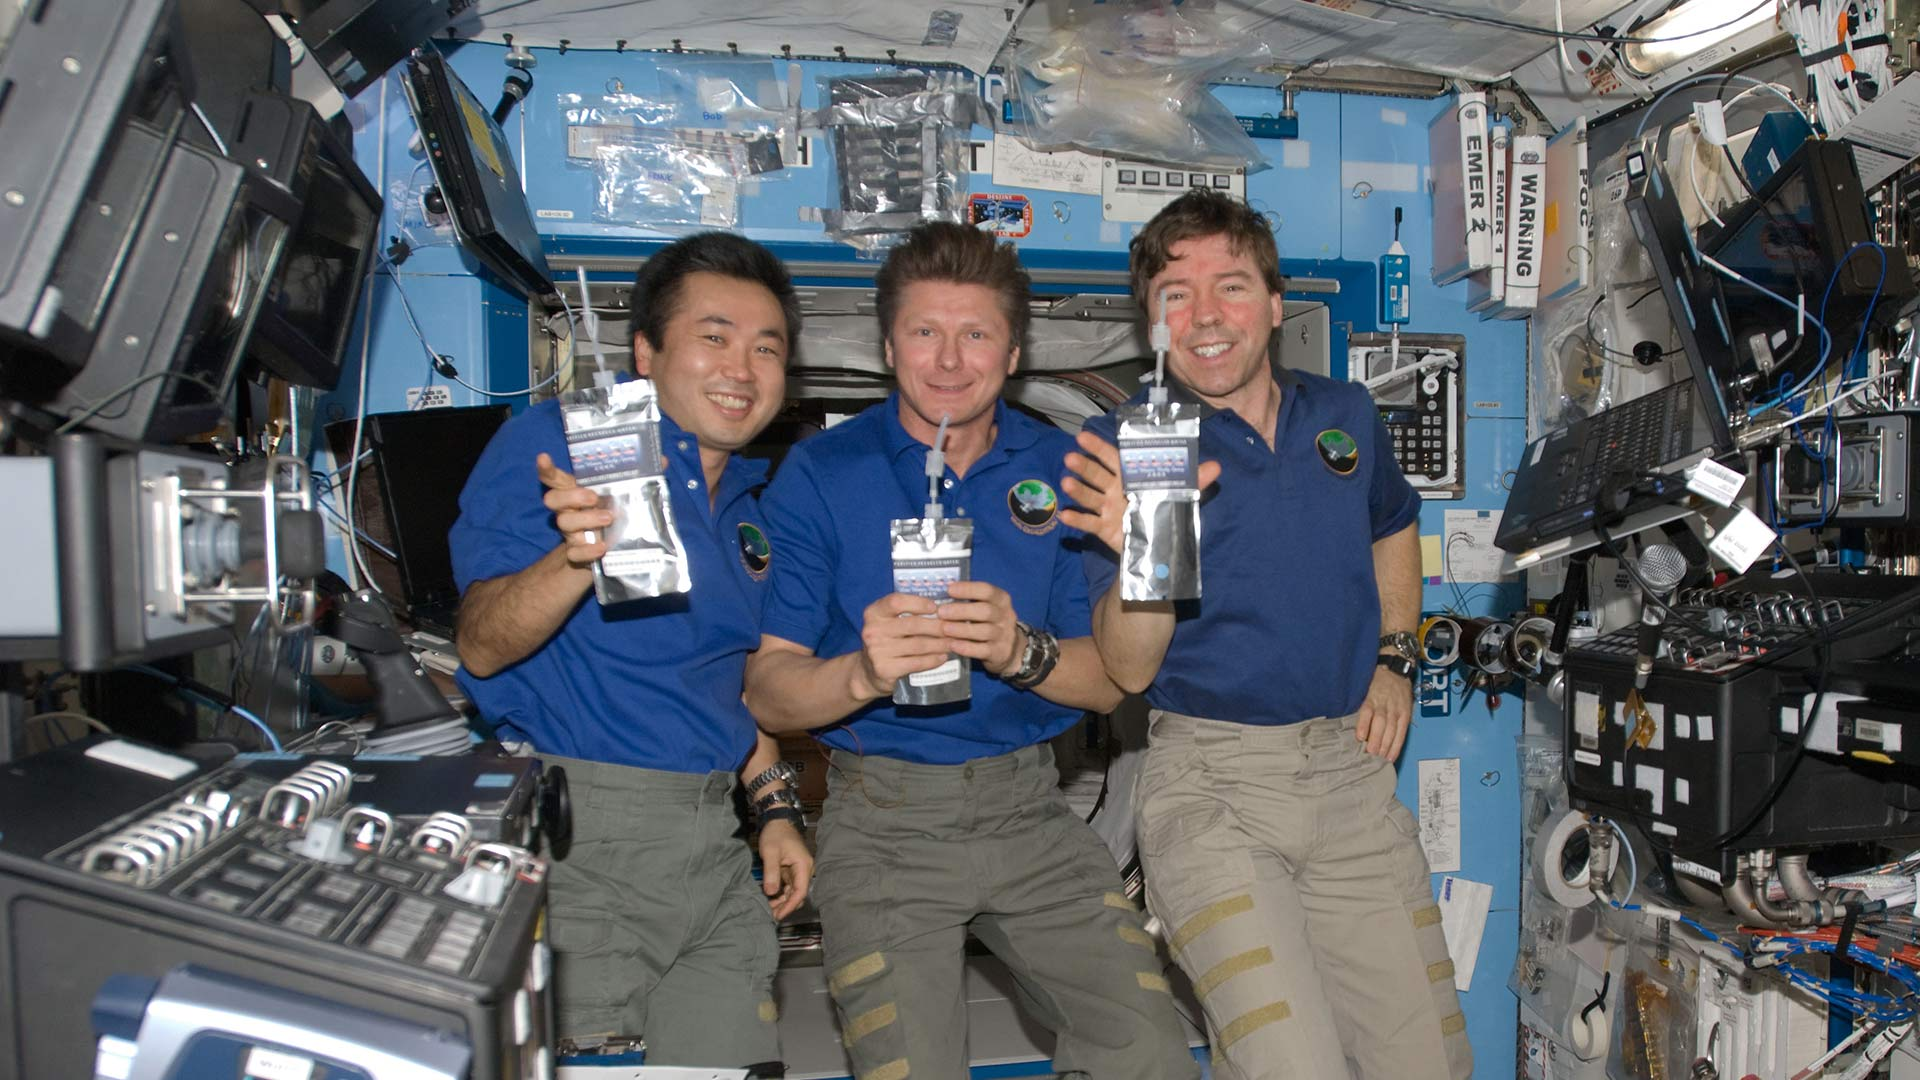 Astronauts Drinking Water